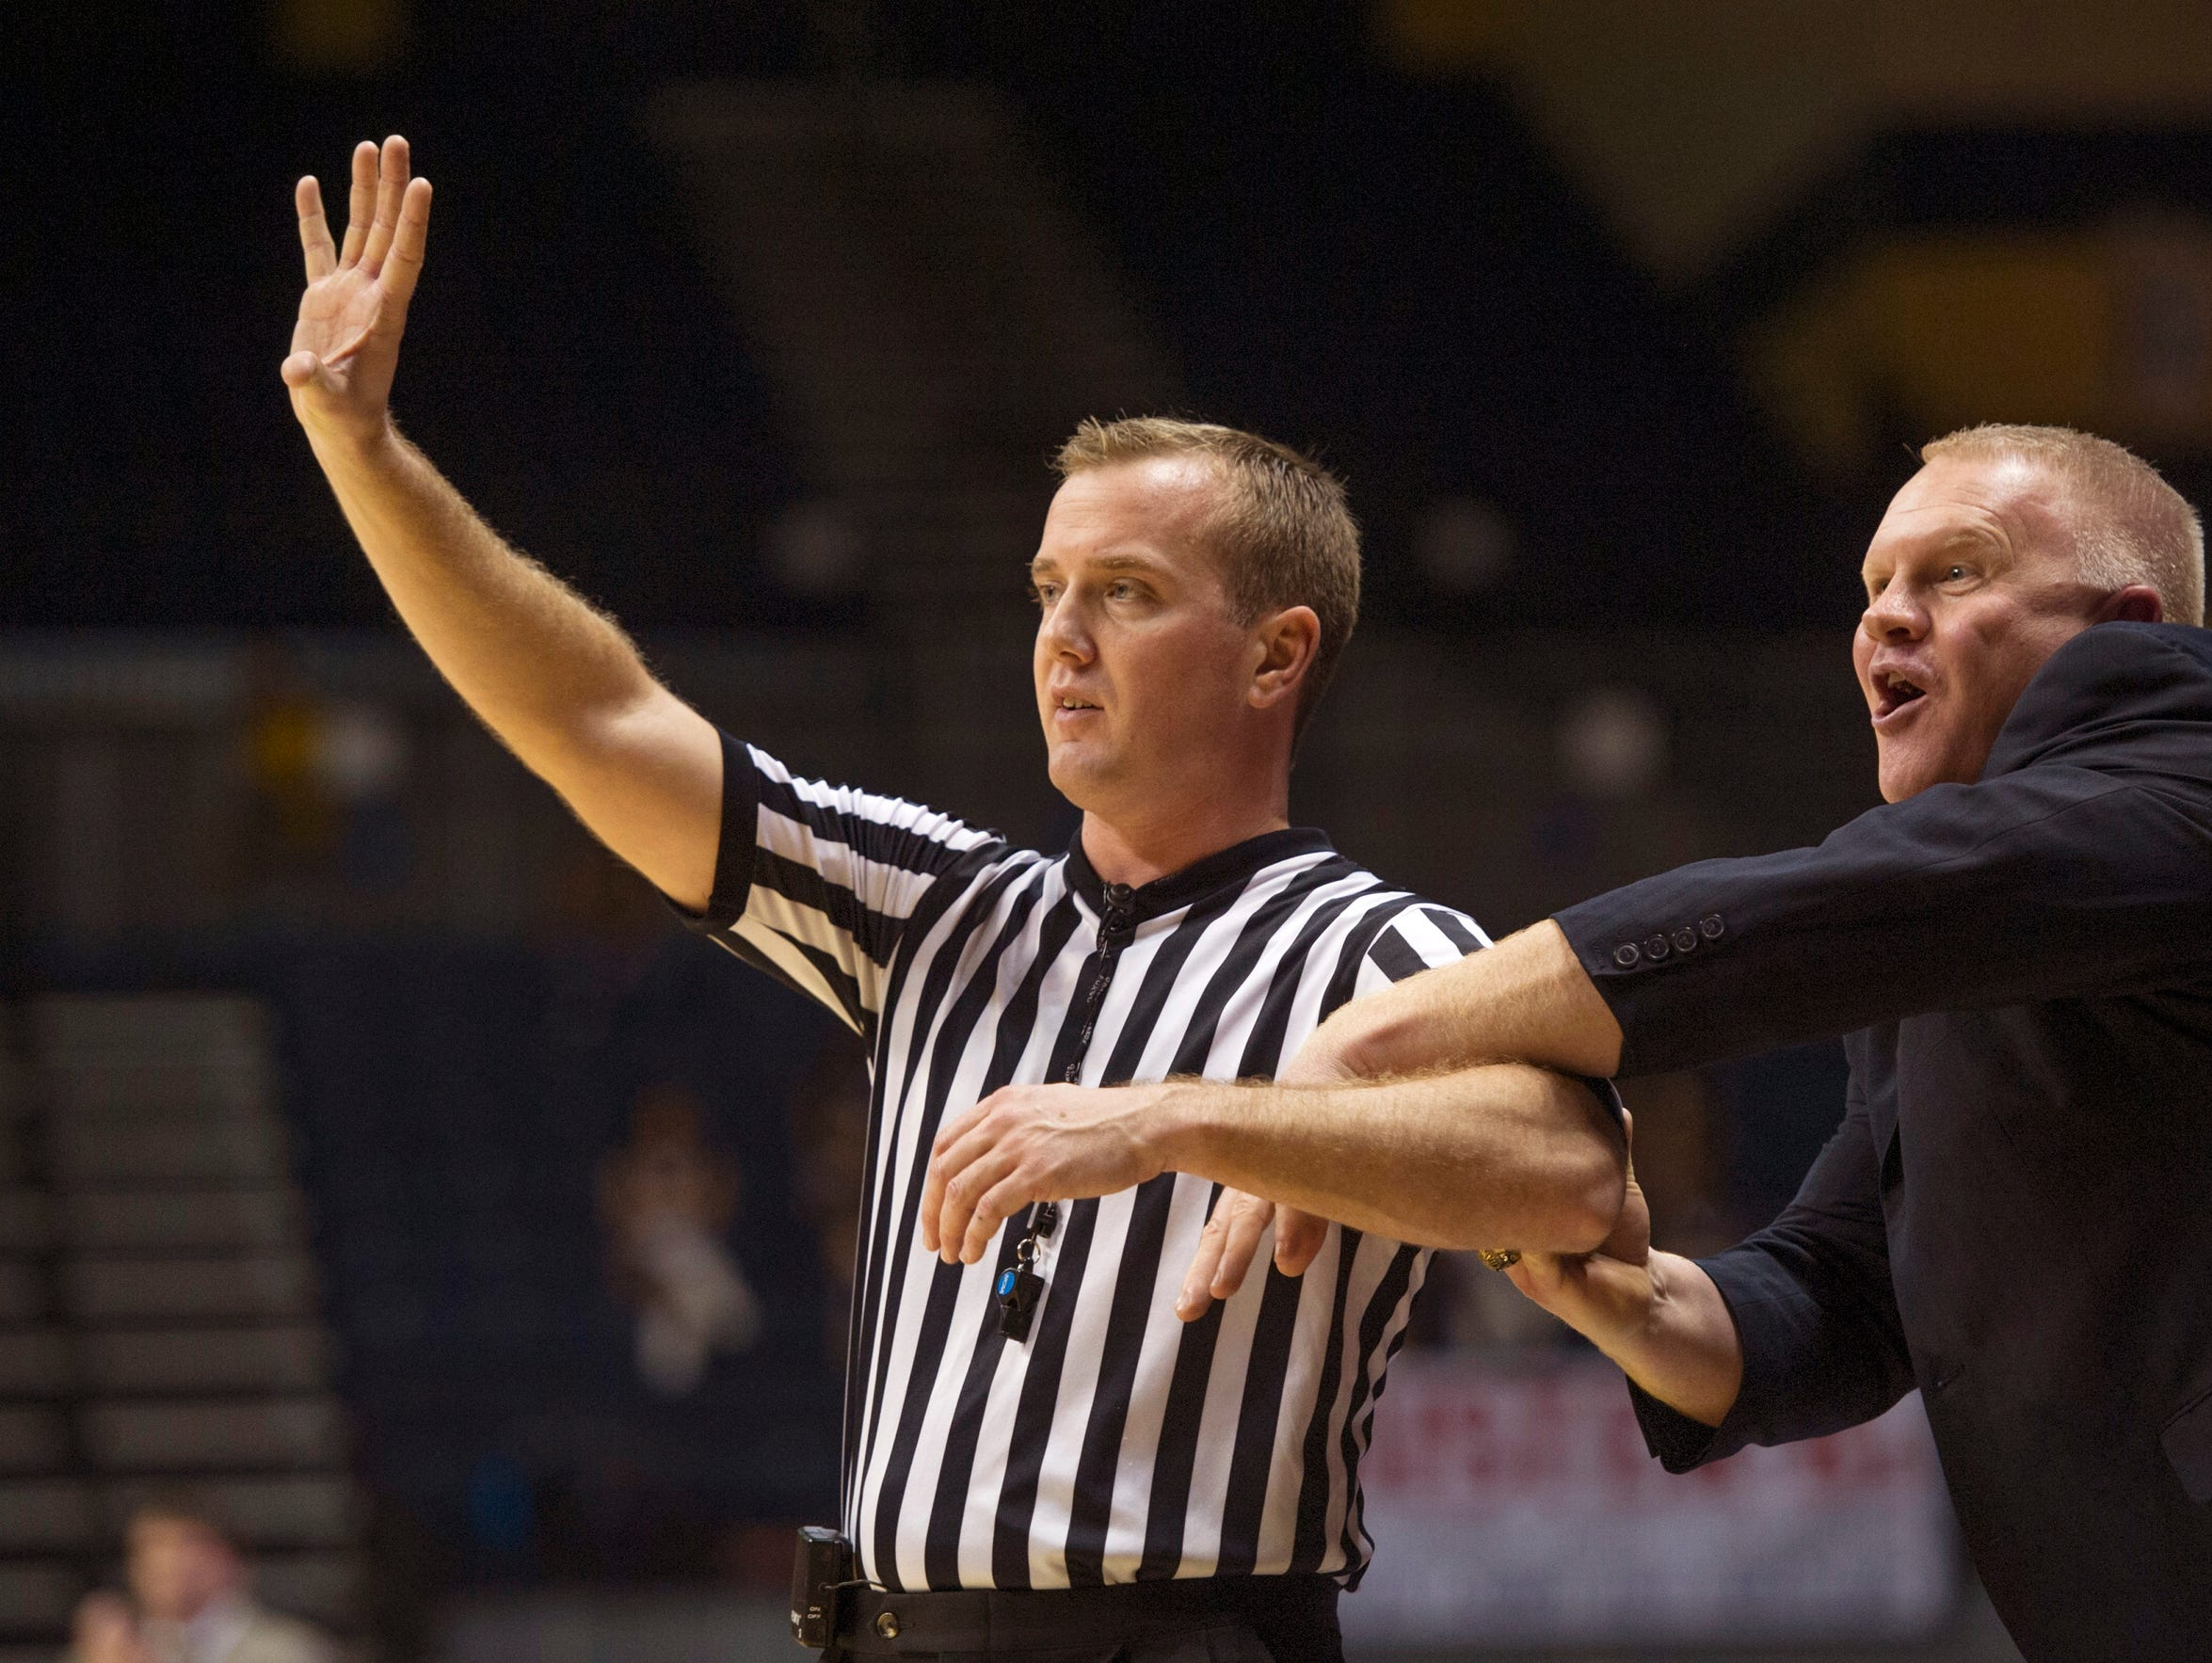 Murray State Racers head coach Rob Cross demonstrates